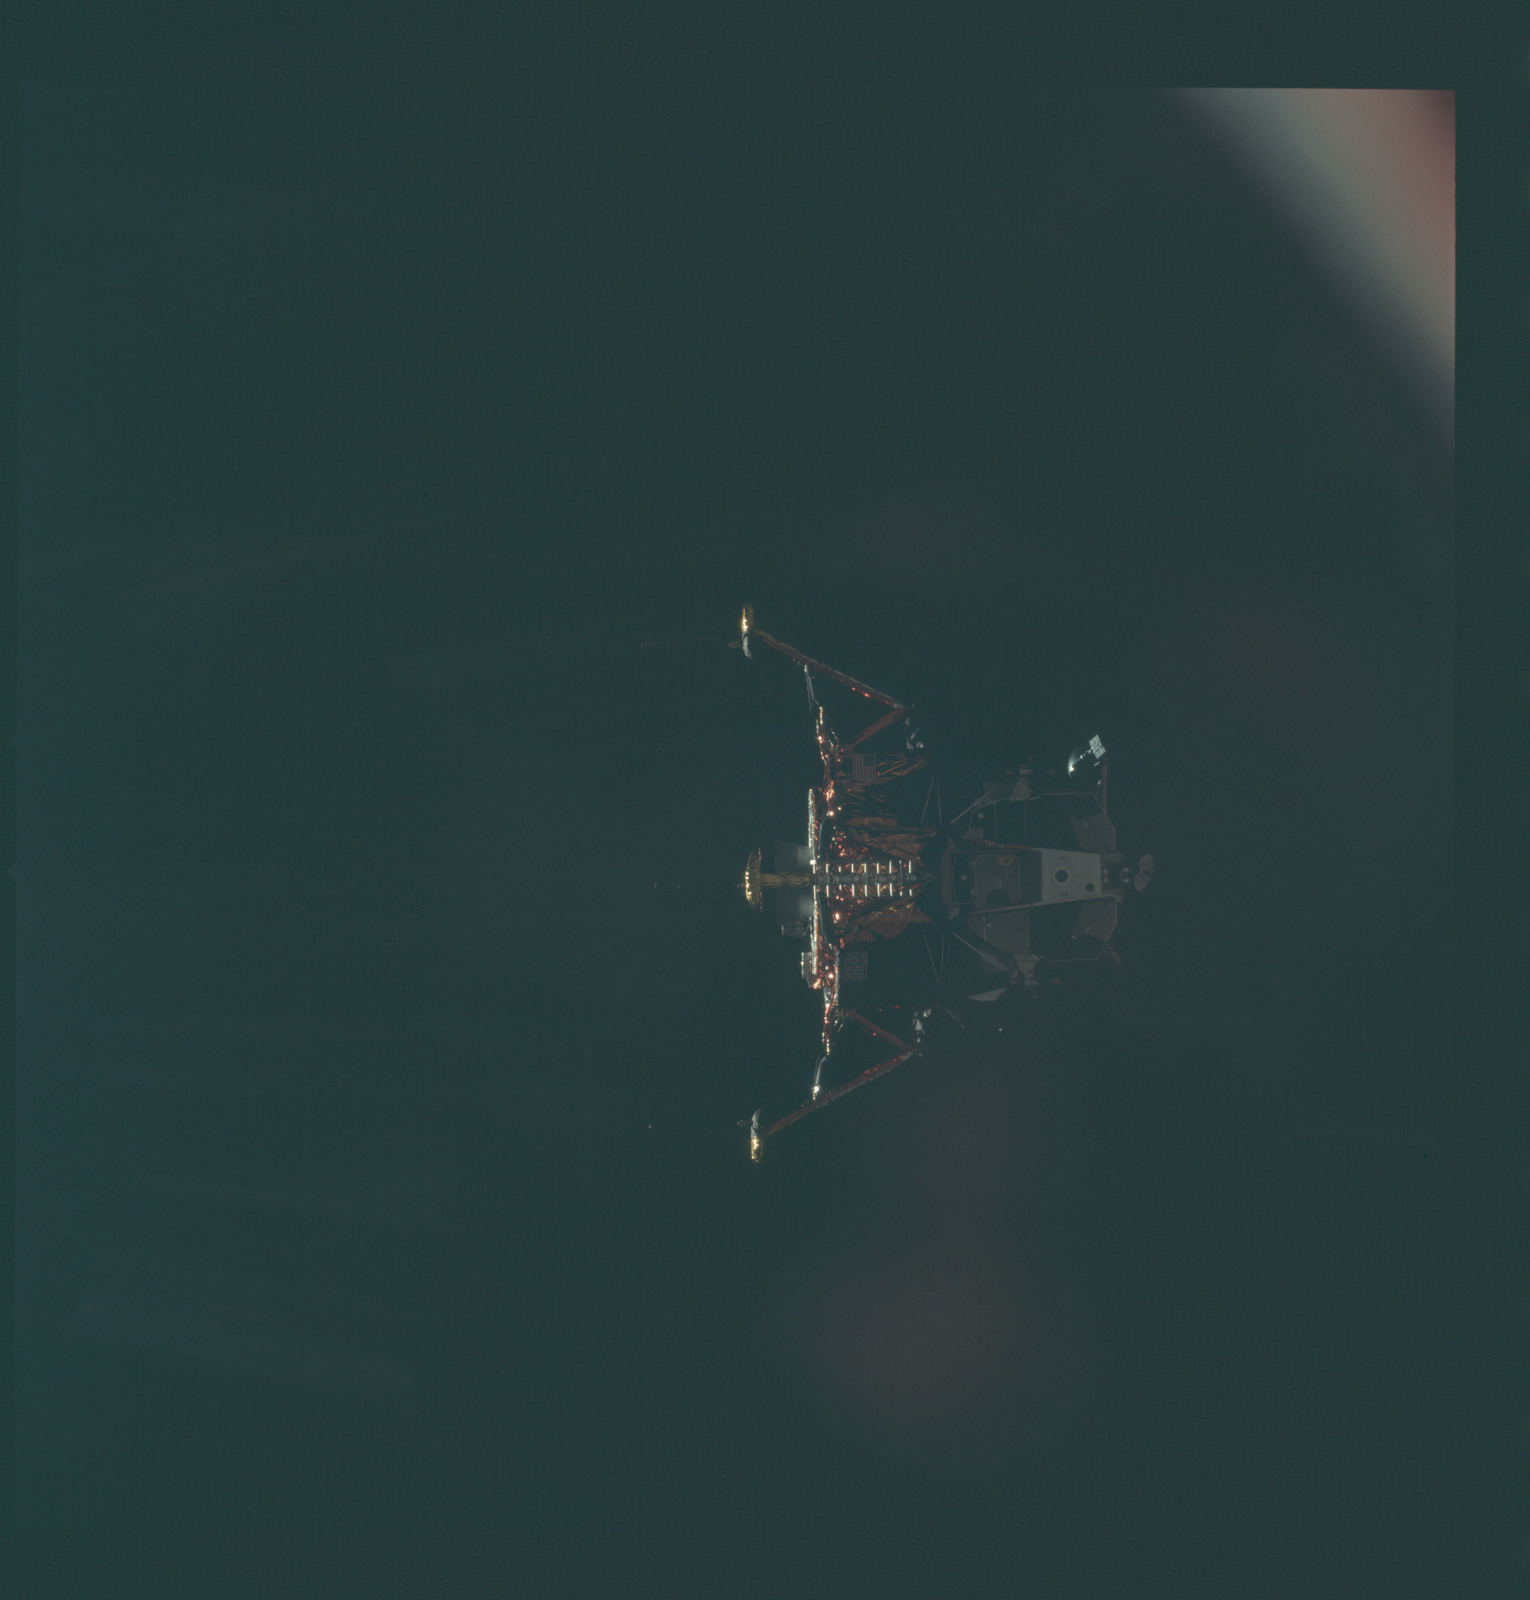 AS11-44-6591 - Apollo 11 - Apollo 11 Mission image - View of Lunar Module separation from the Command Module